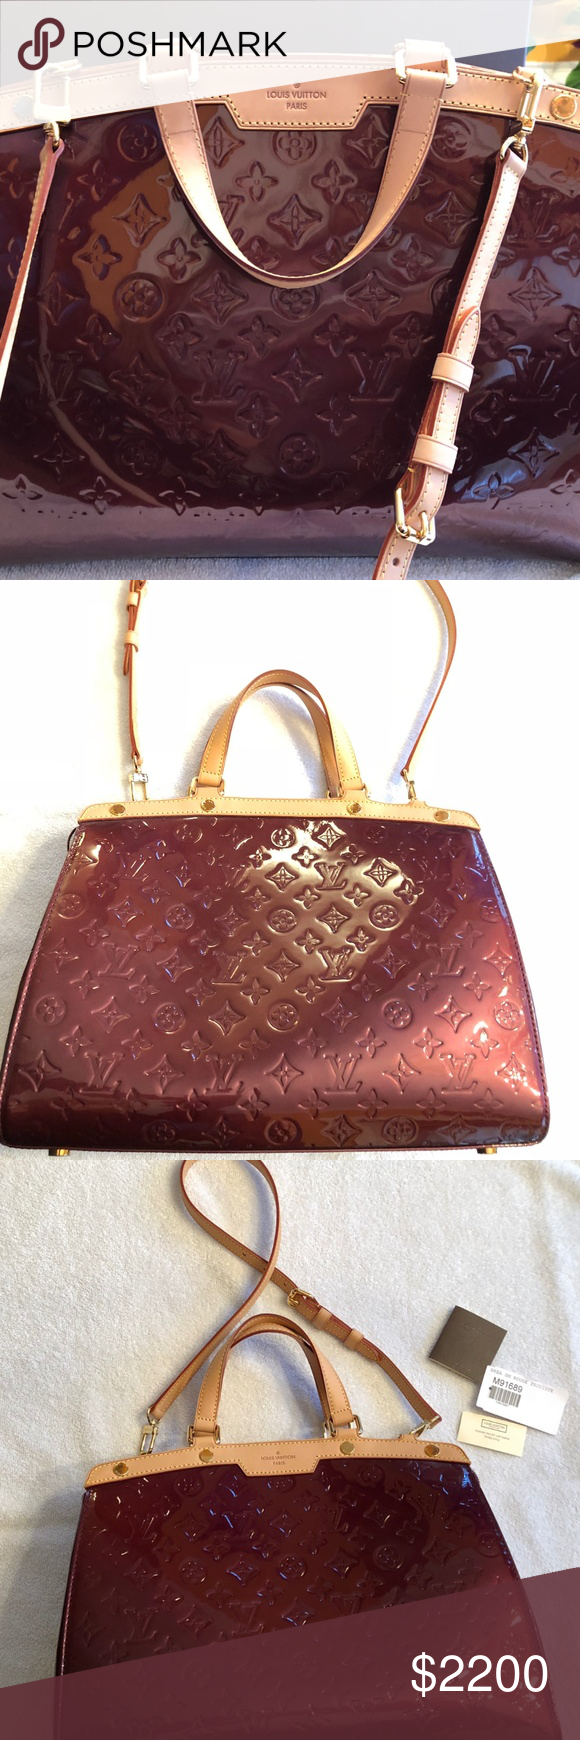 Spotted while shopping on Poshmark  Authentic LOUIS VUITTON Rouge Brea GM  Shoulder Bag!  poshmark  fashion  shopping  style  Louis Vuitton  Handbags af8d672858